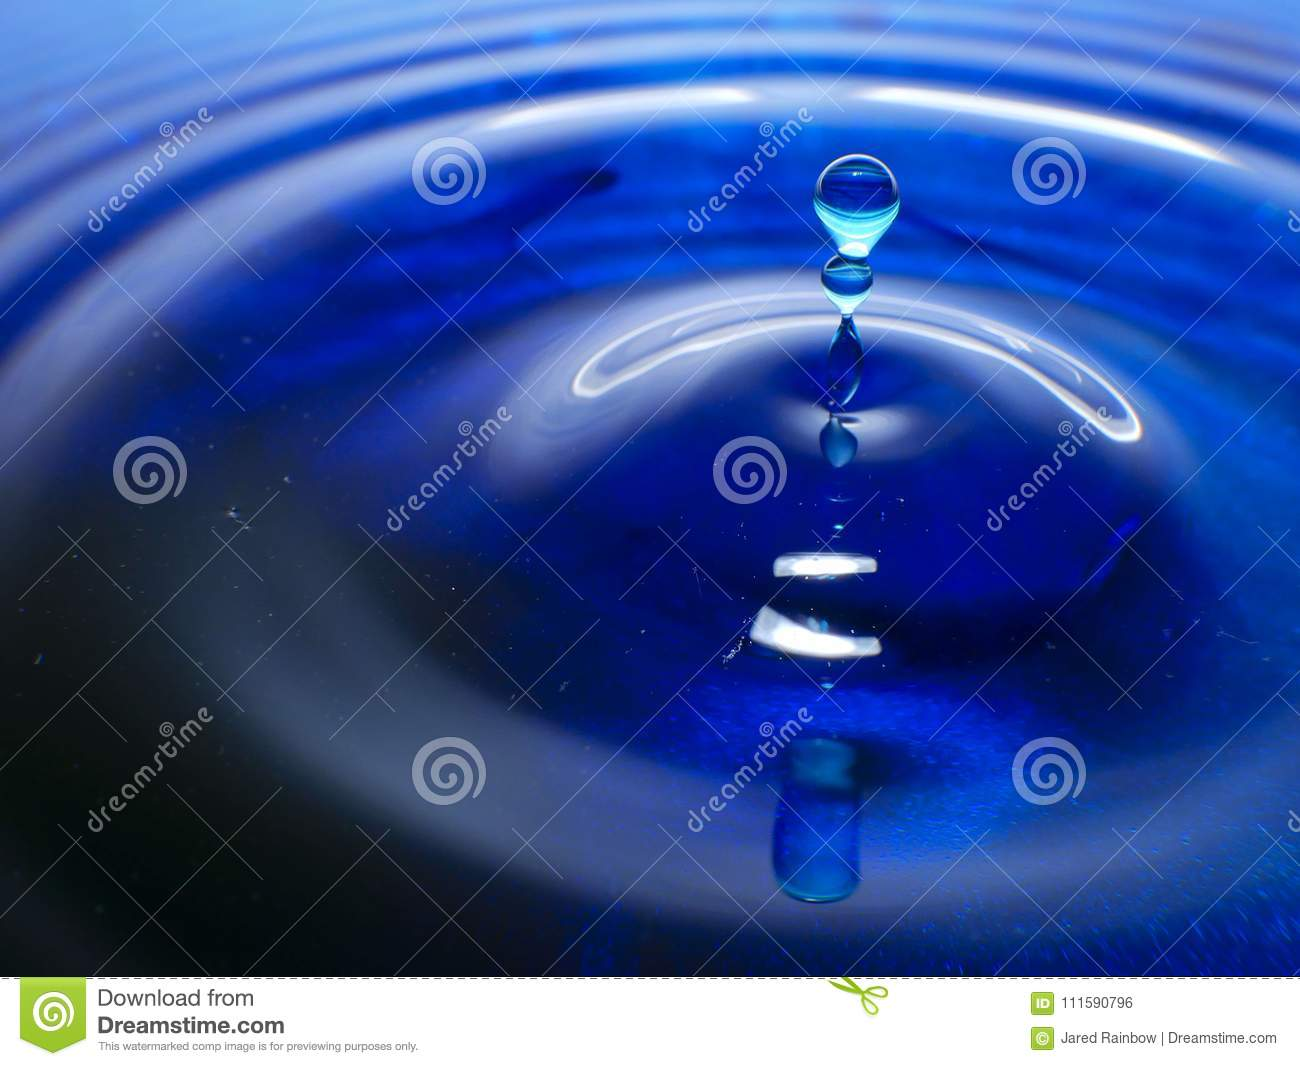 Macro Photography Of A Dark Blue Water Drop Ink Drops Splash And Ripples Wet